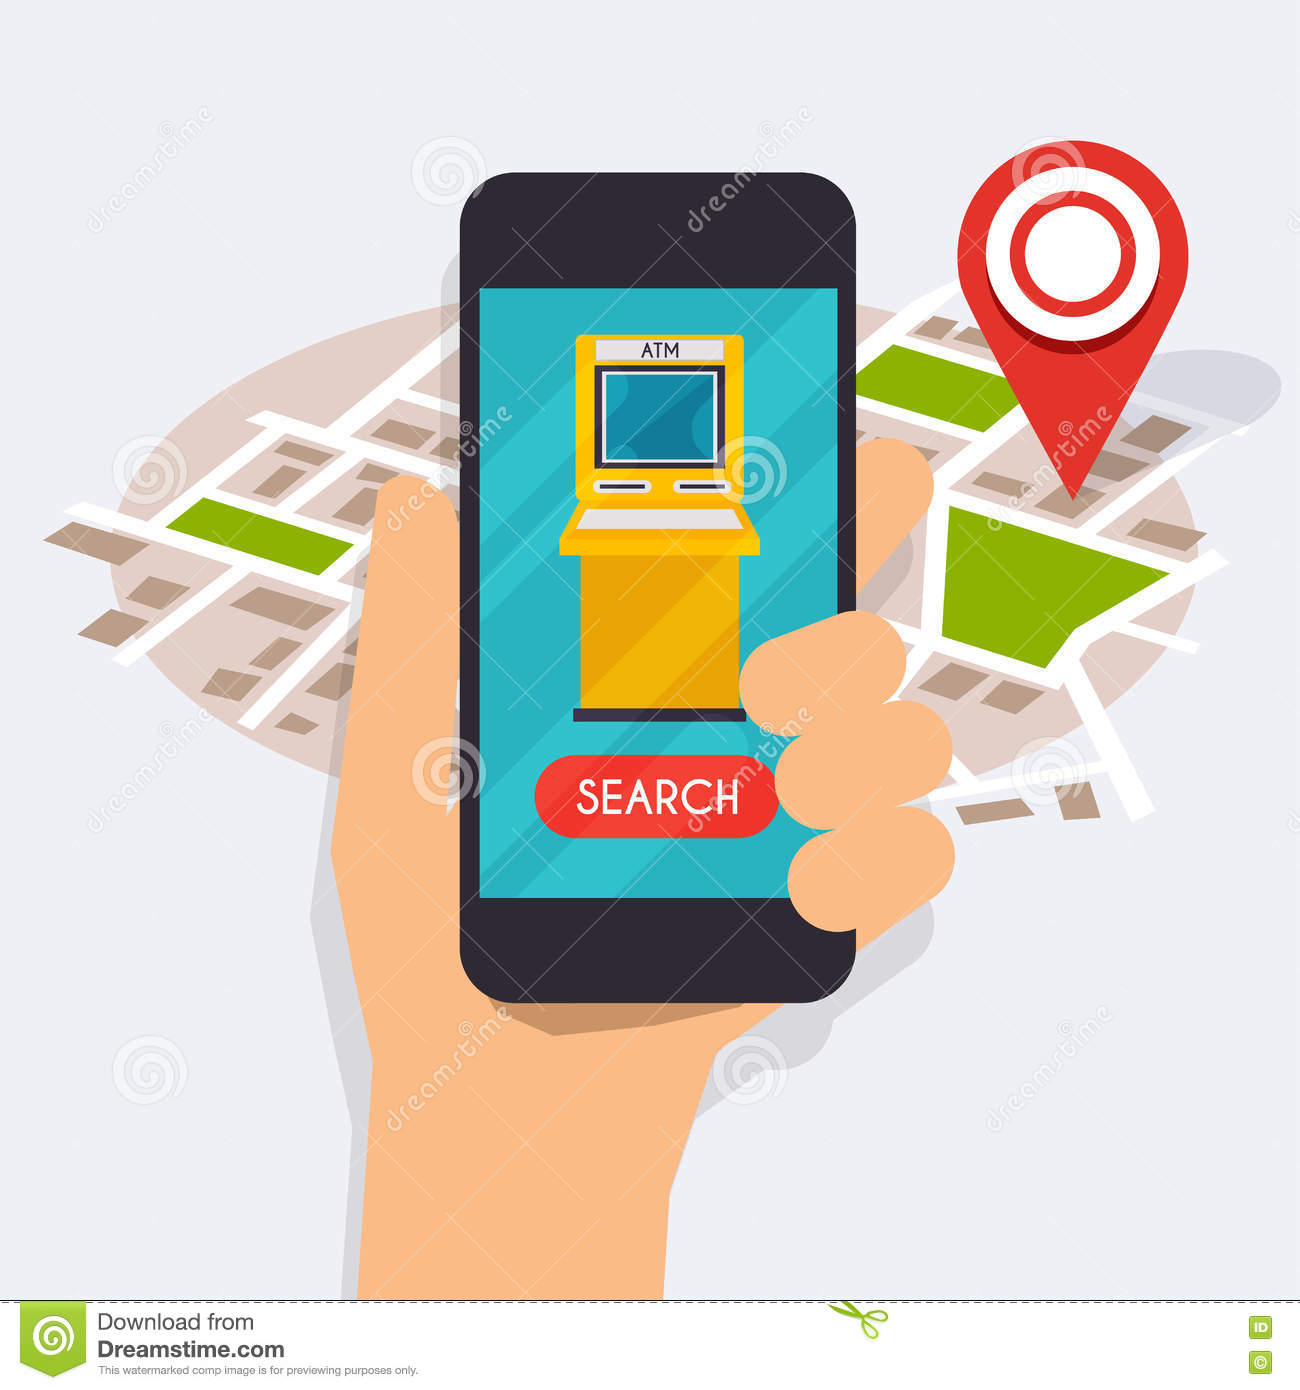 Hand Holding Mobile Smart Phone With Mobile App Atm Search